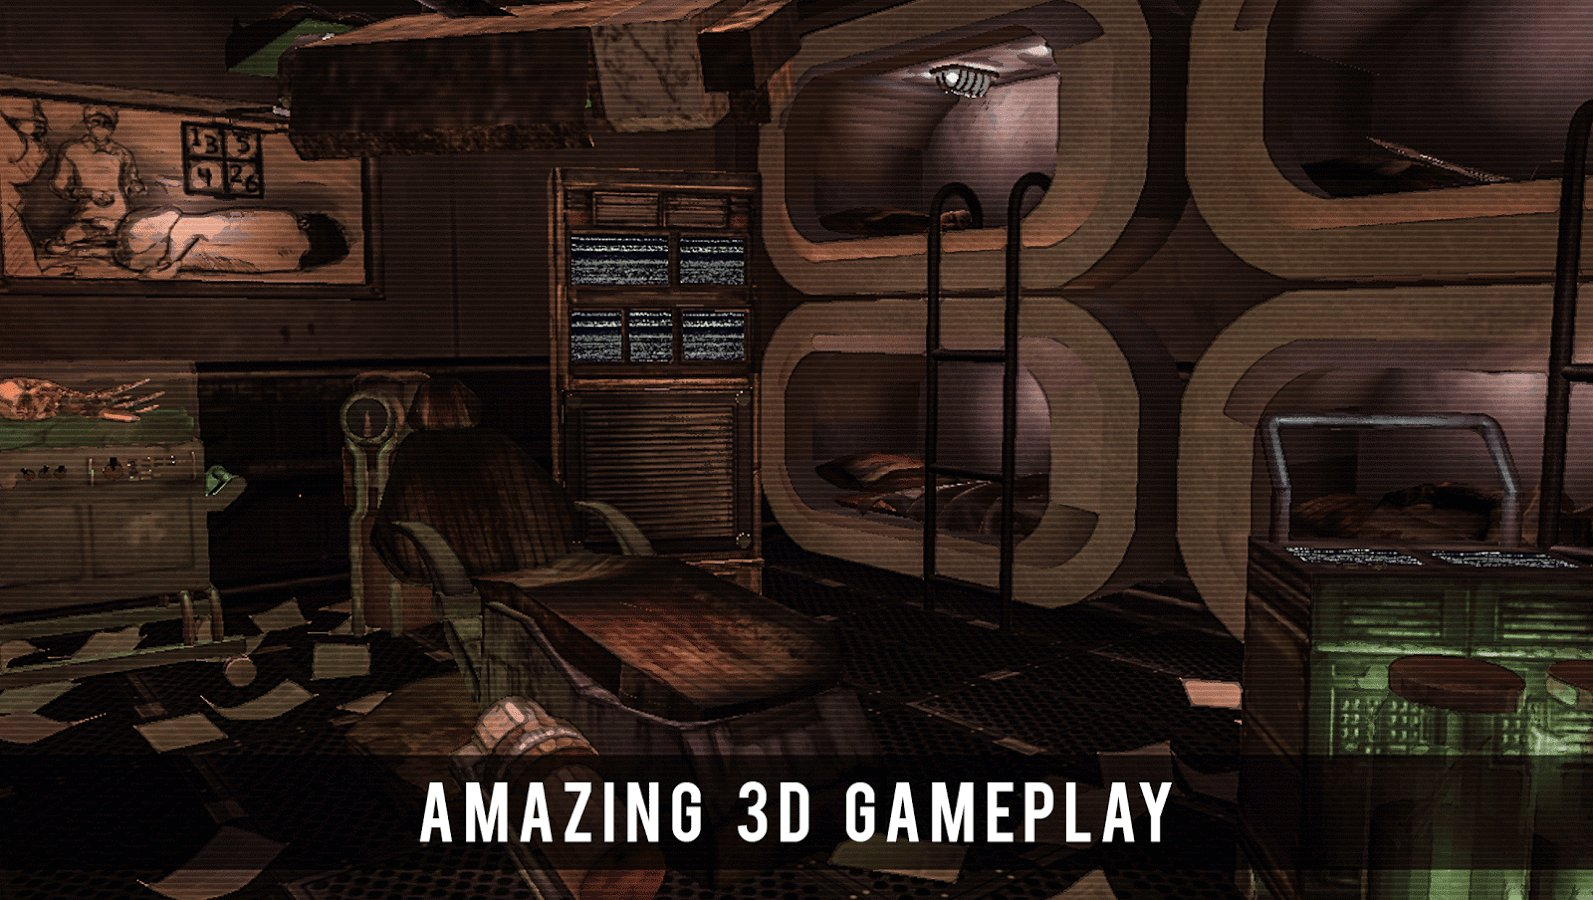 6-Escape Game: Madness 3D